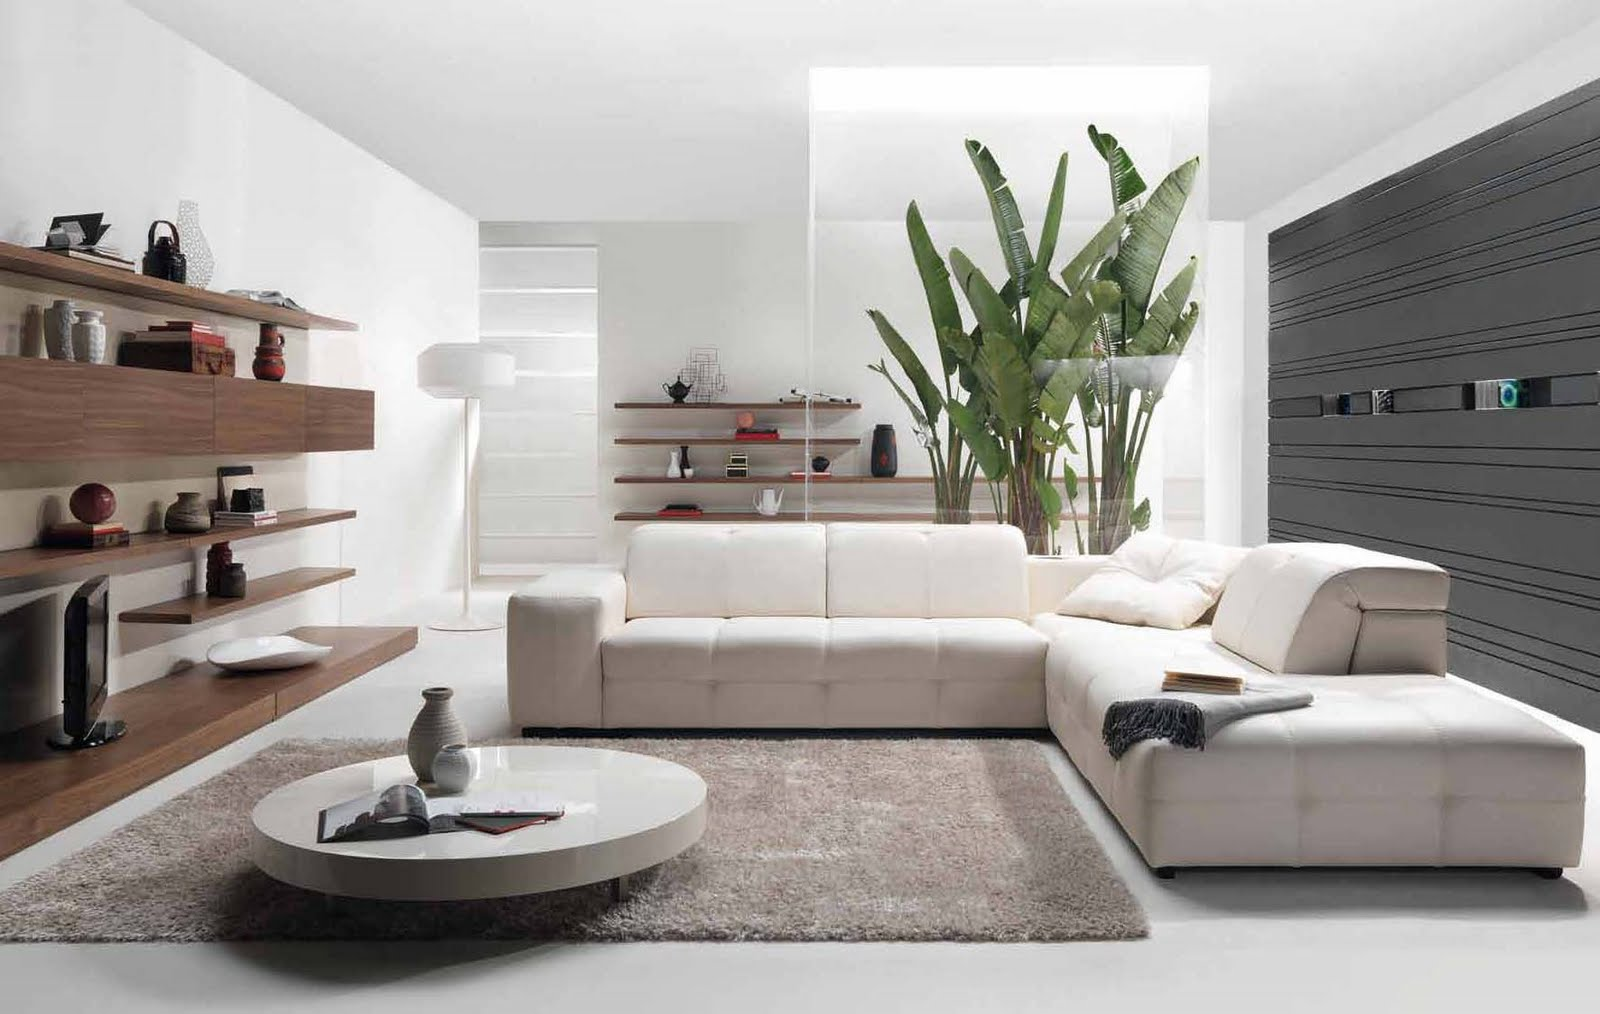 Future house design modern living room interior design styles 2010 by natuzzi - Modern interior house ...